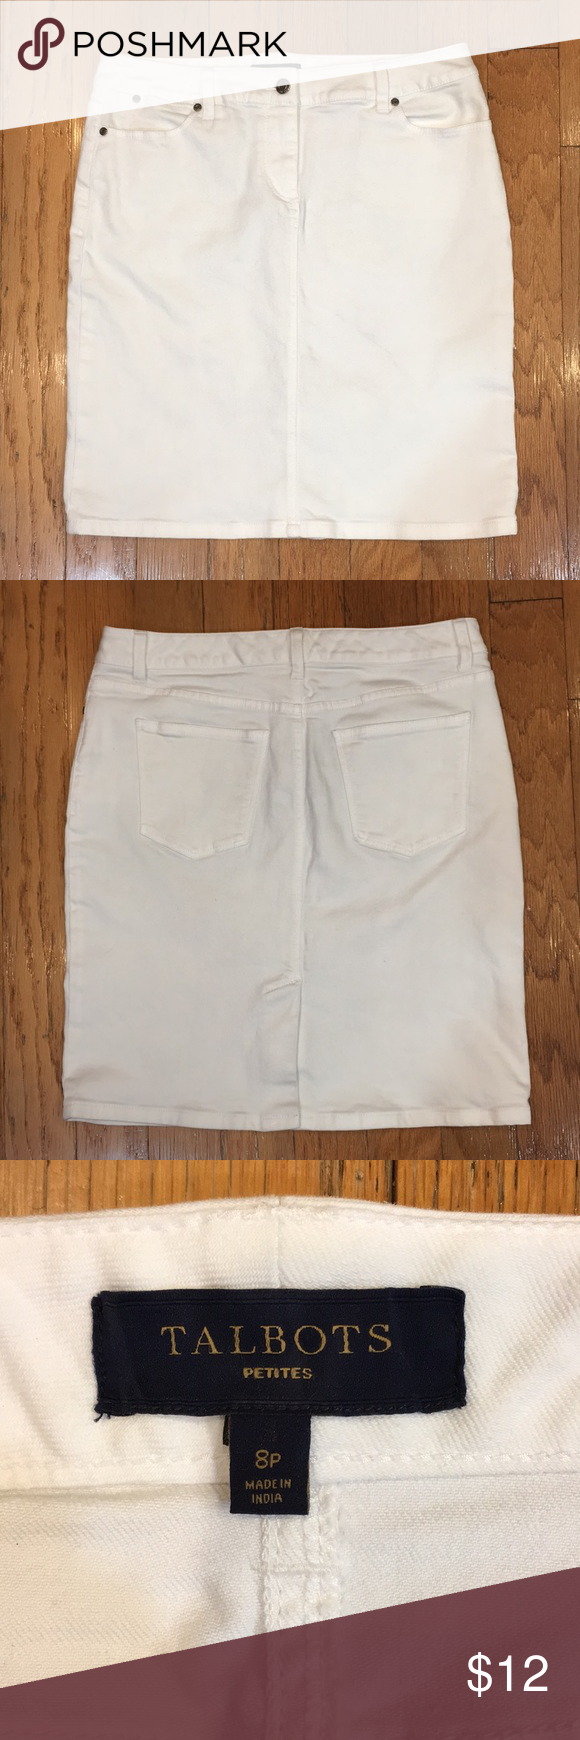 2056864e33a Talbots White Denim Skirt Size 8 PETITE Talbots White Denim Skirt Size 8  PETITE Waist